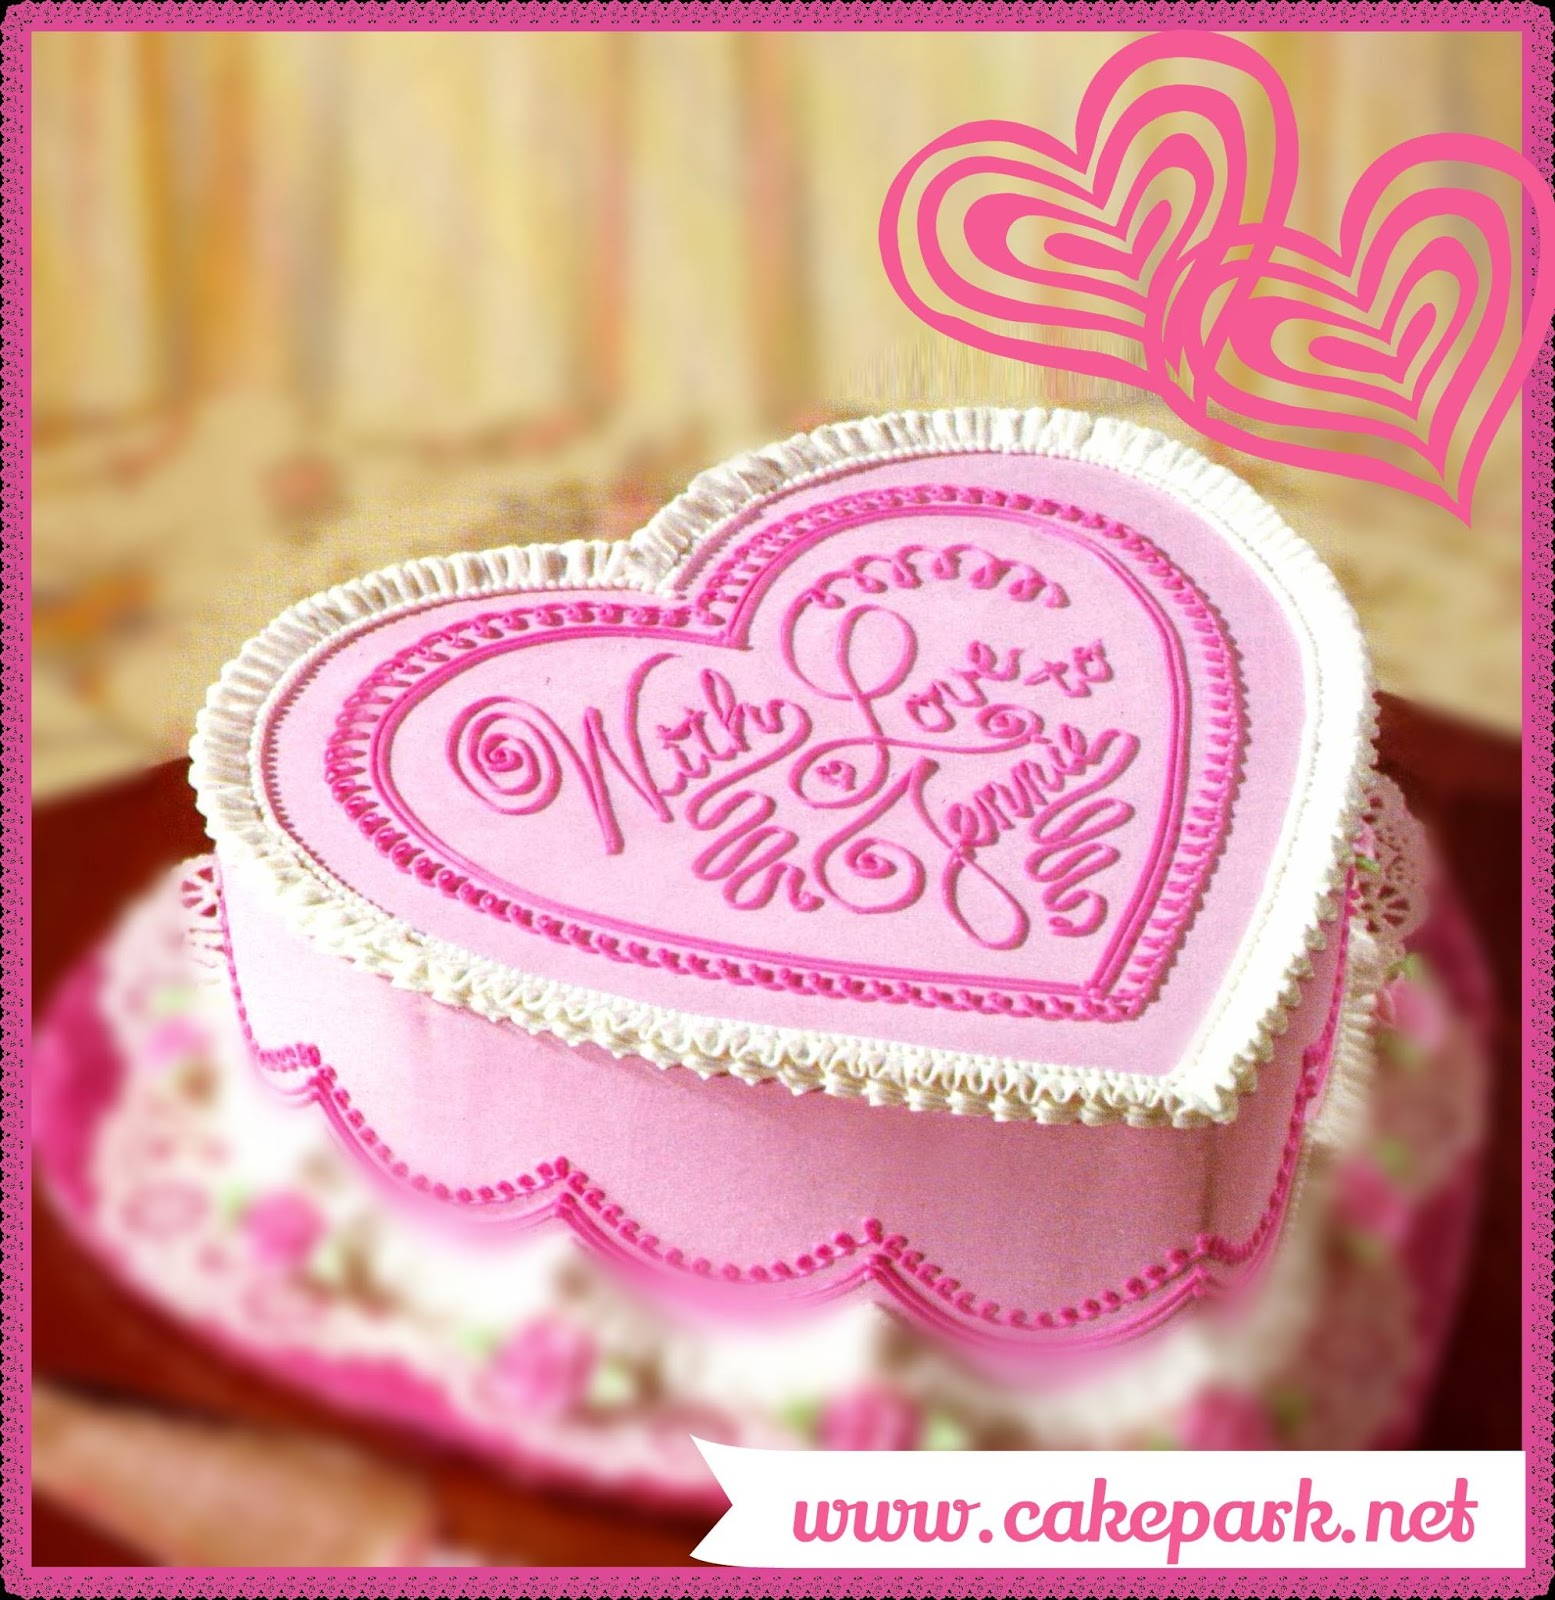 Cake Park Provides Services To Order Cakes Online In Chennai And Delivery Bangalore Are Not Just For Special Occasions